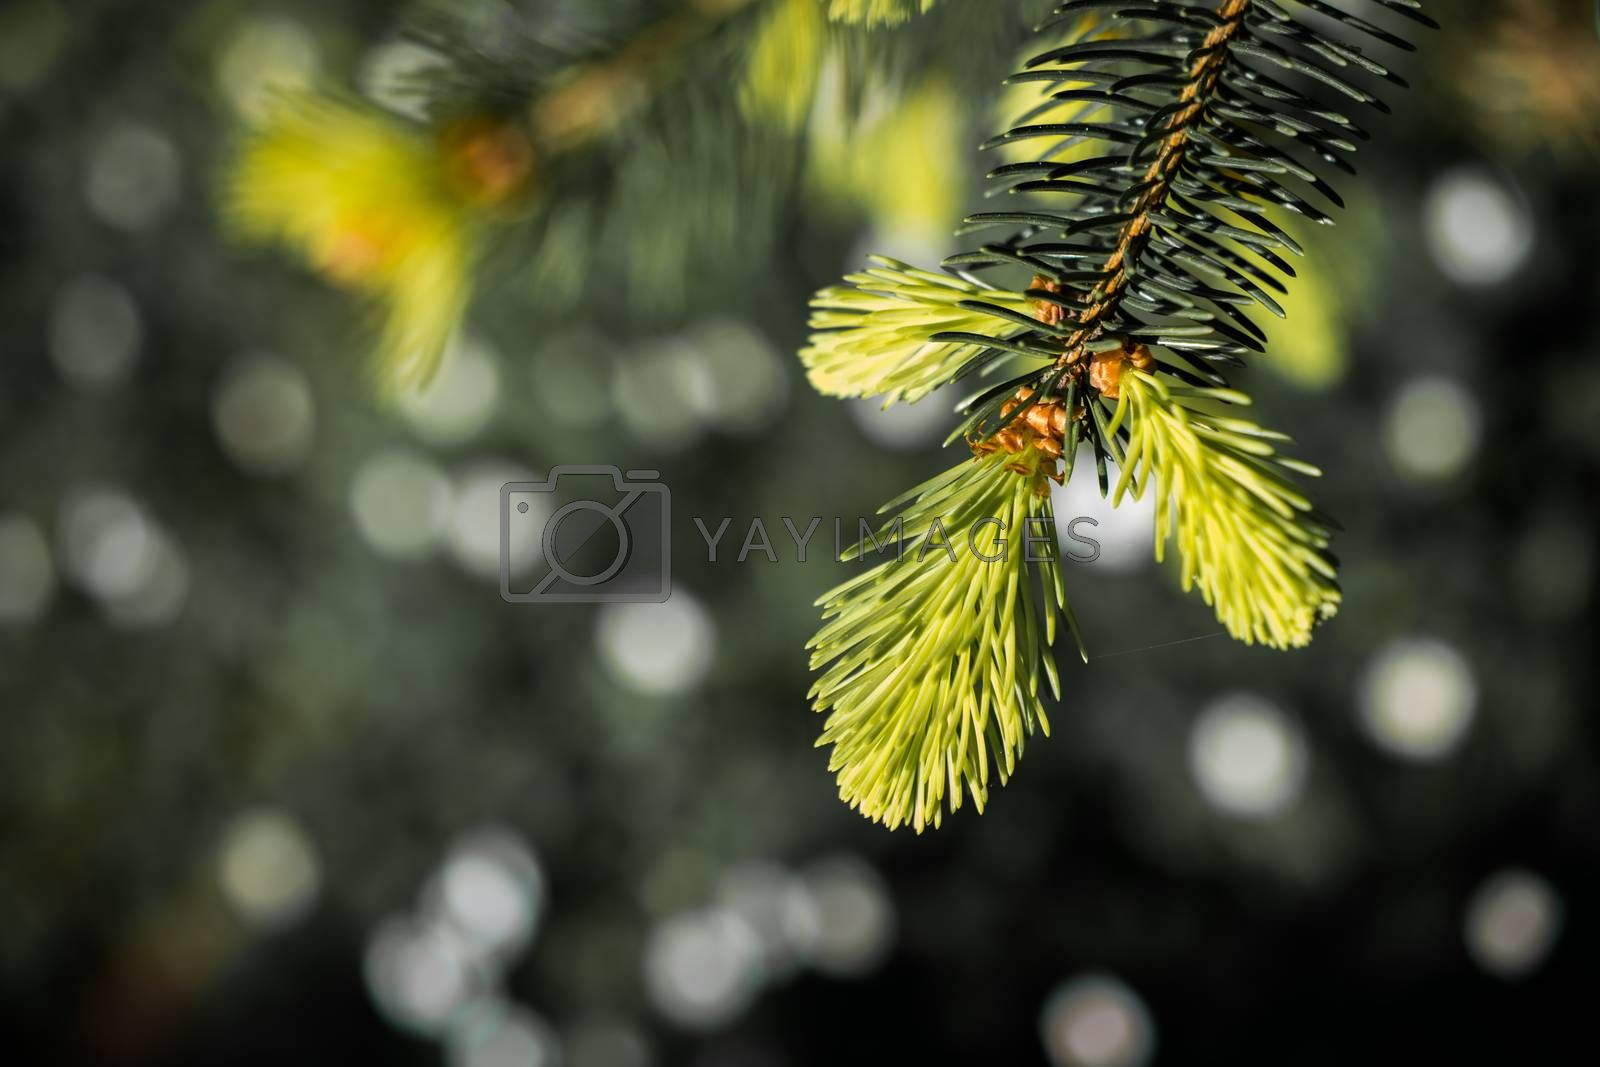 Green tree leaves as a background